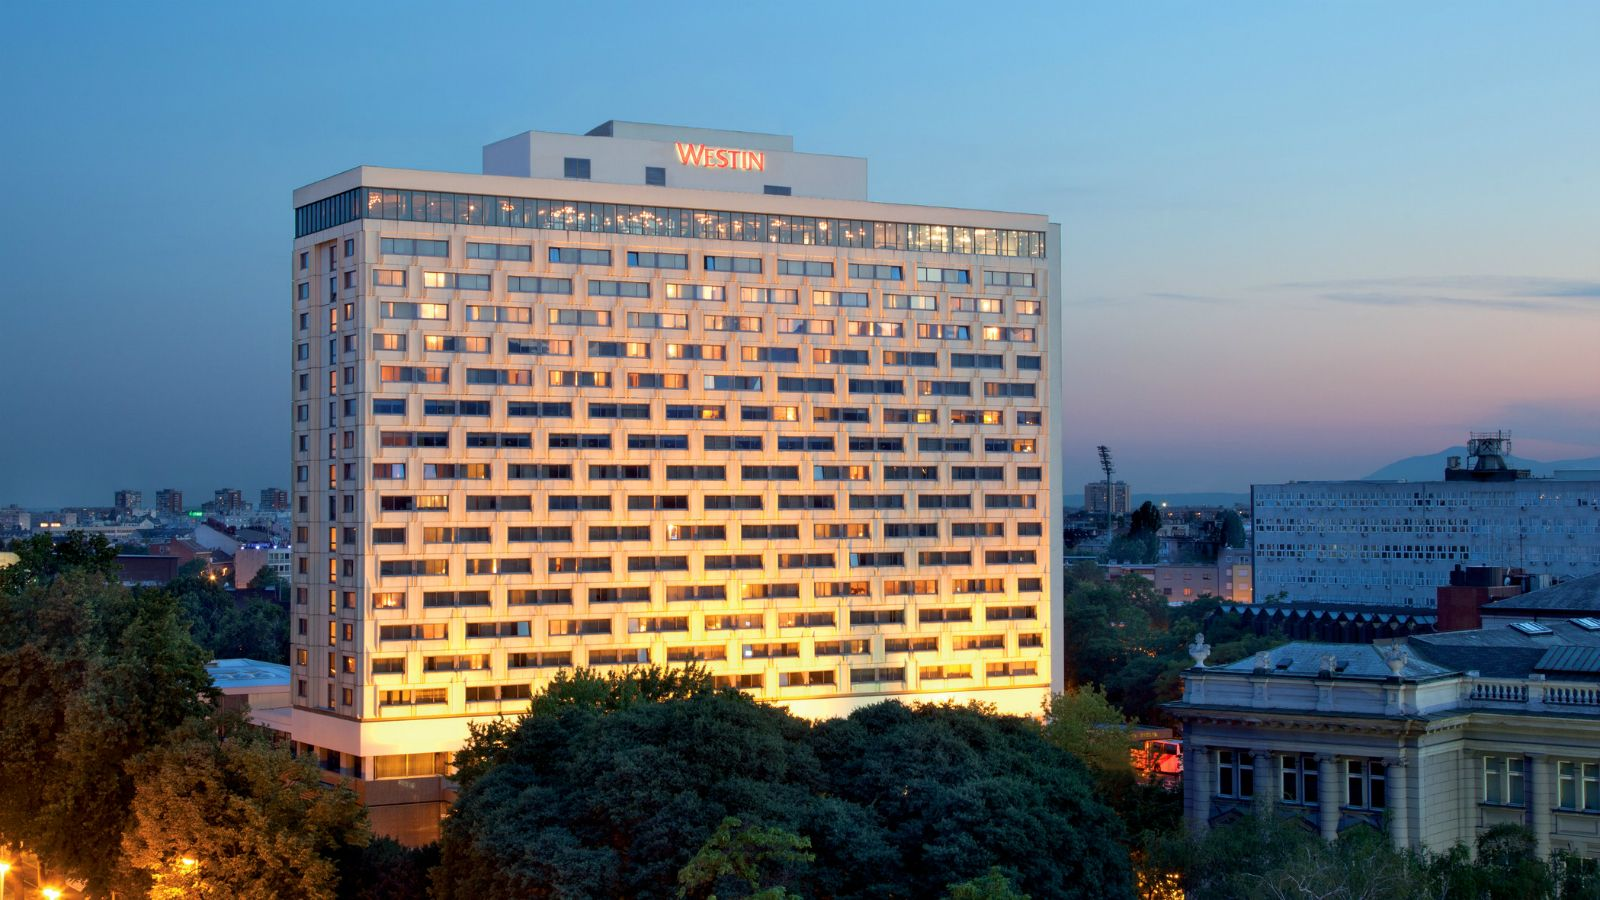 The Westin Zagreb location